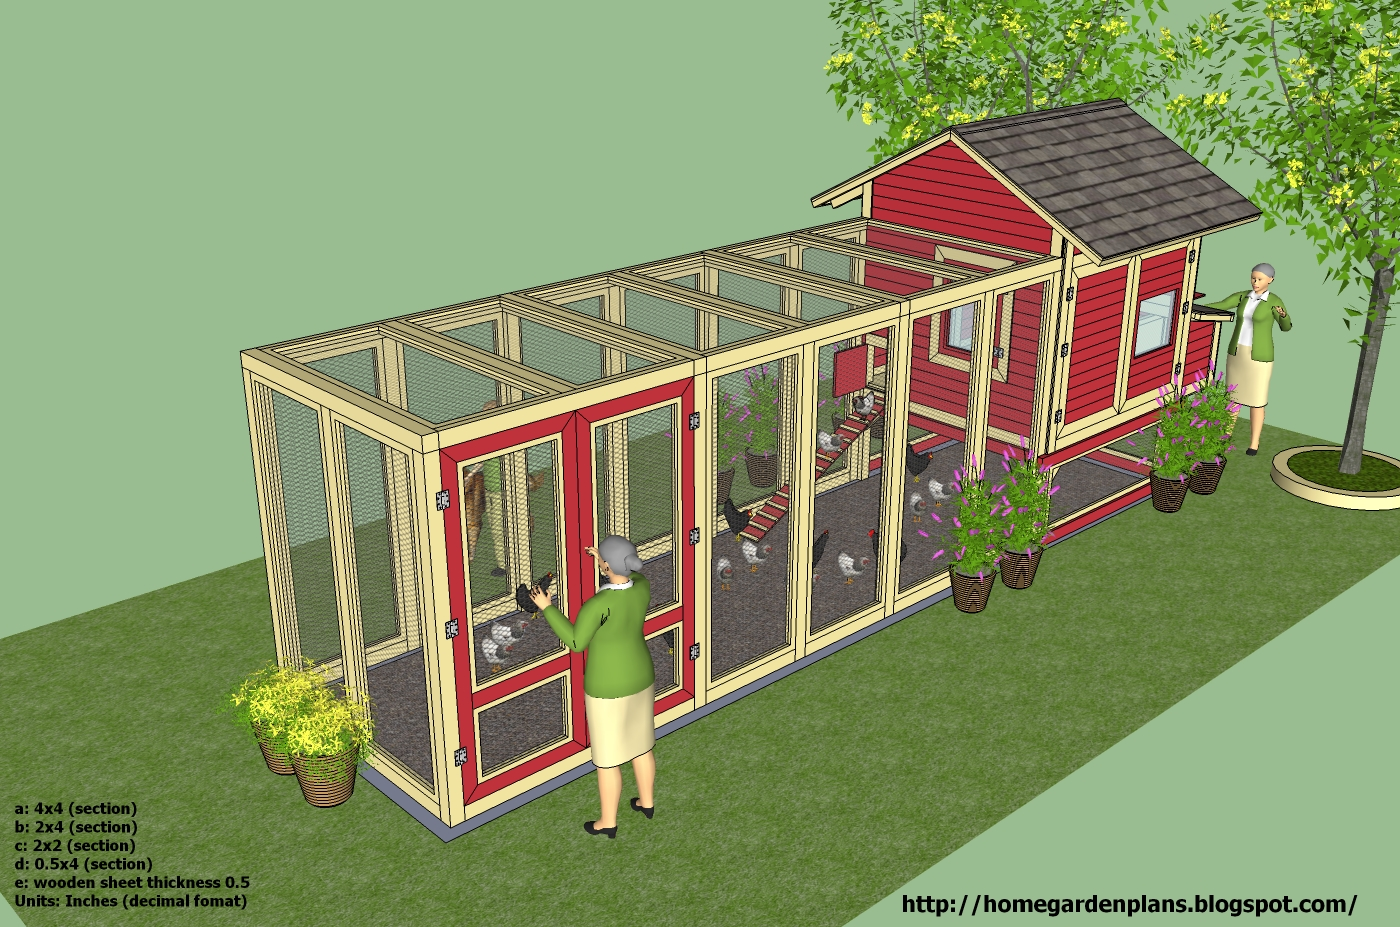 Home garden plans l102 chicken coop plans construction for Plans chicken coop